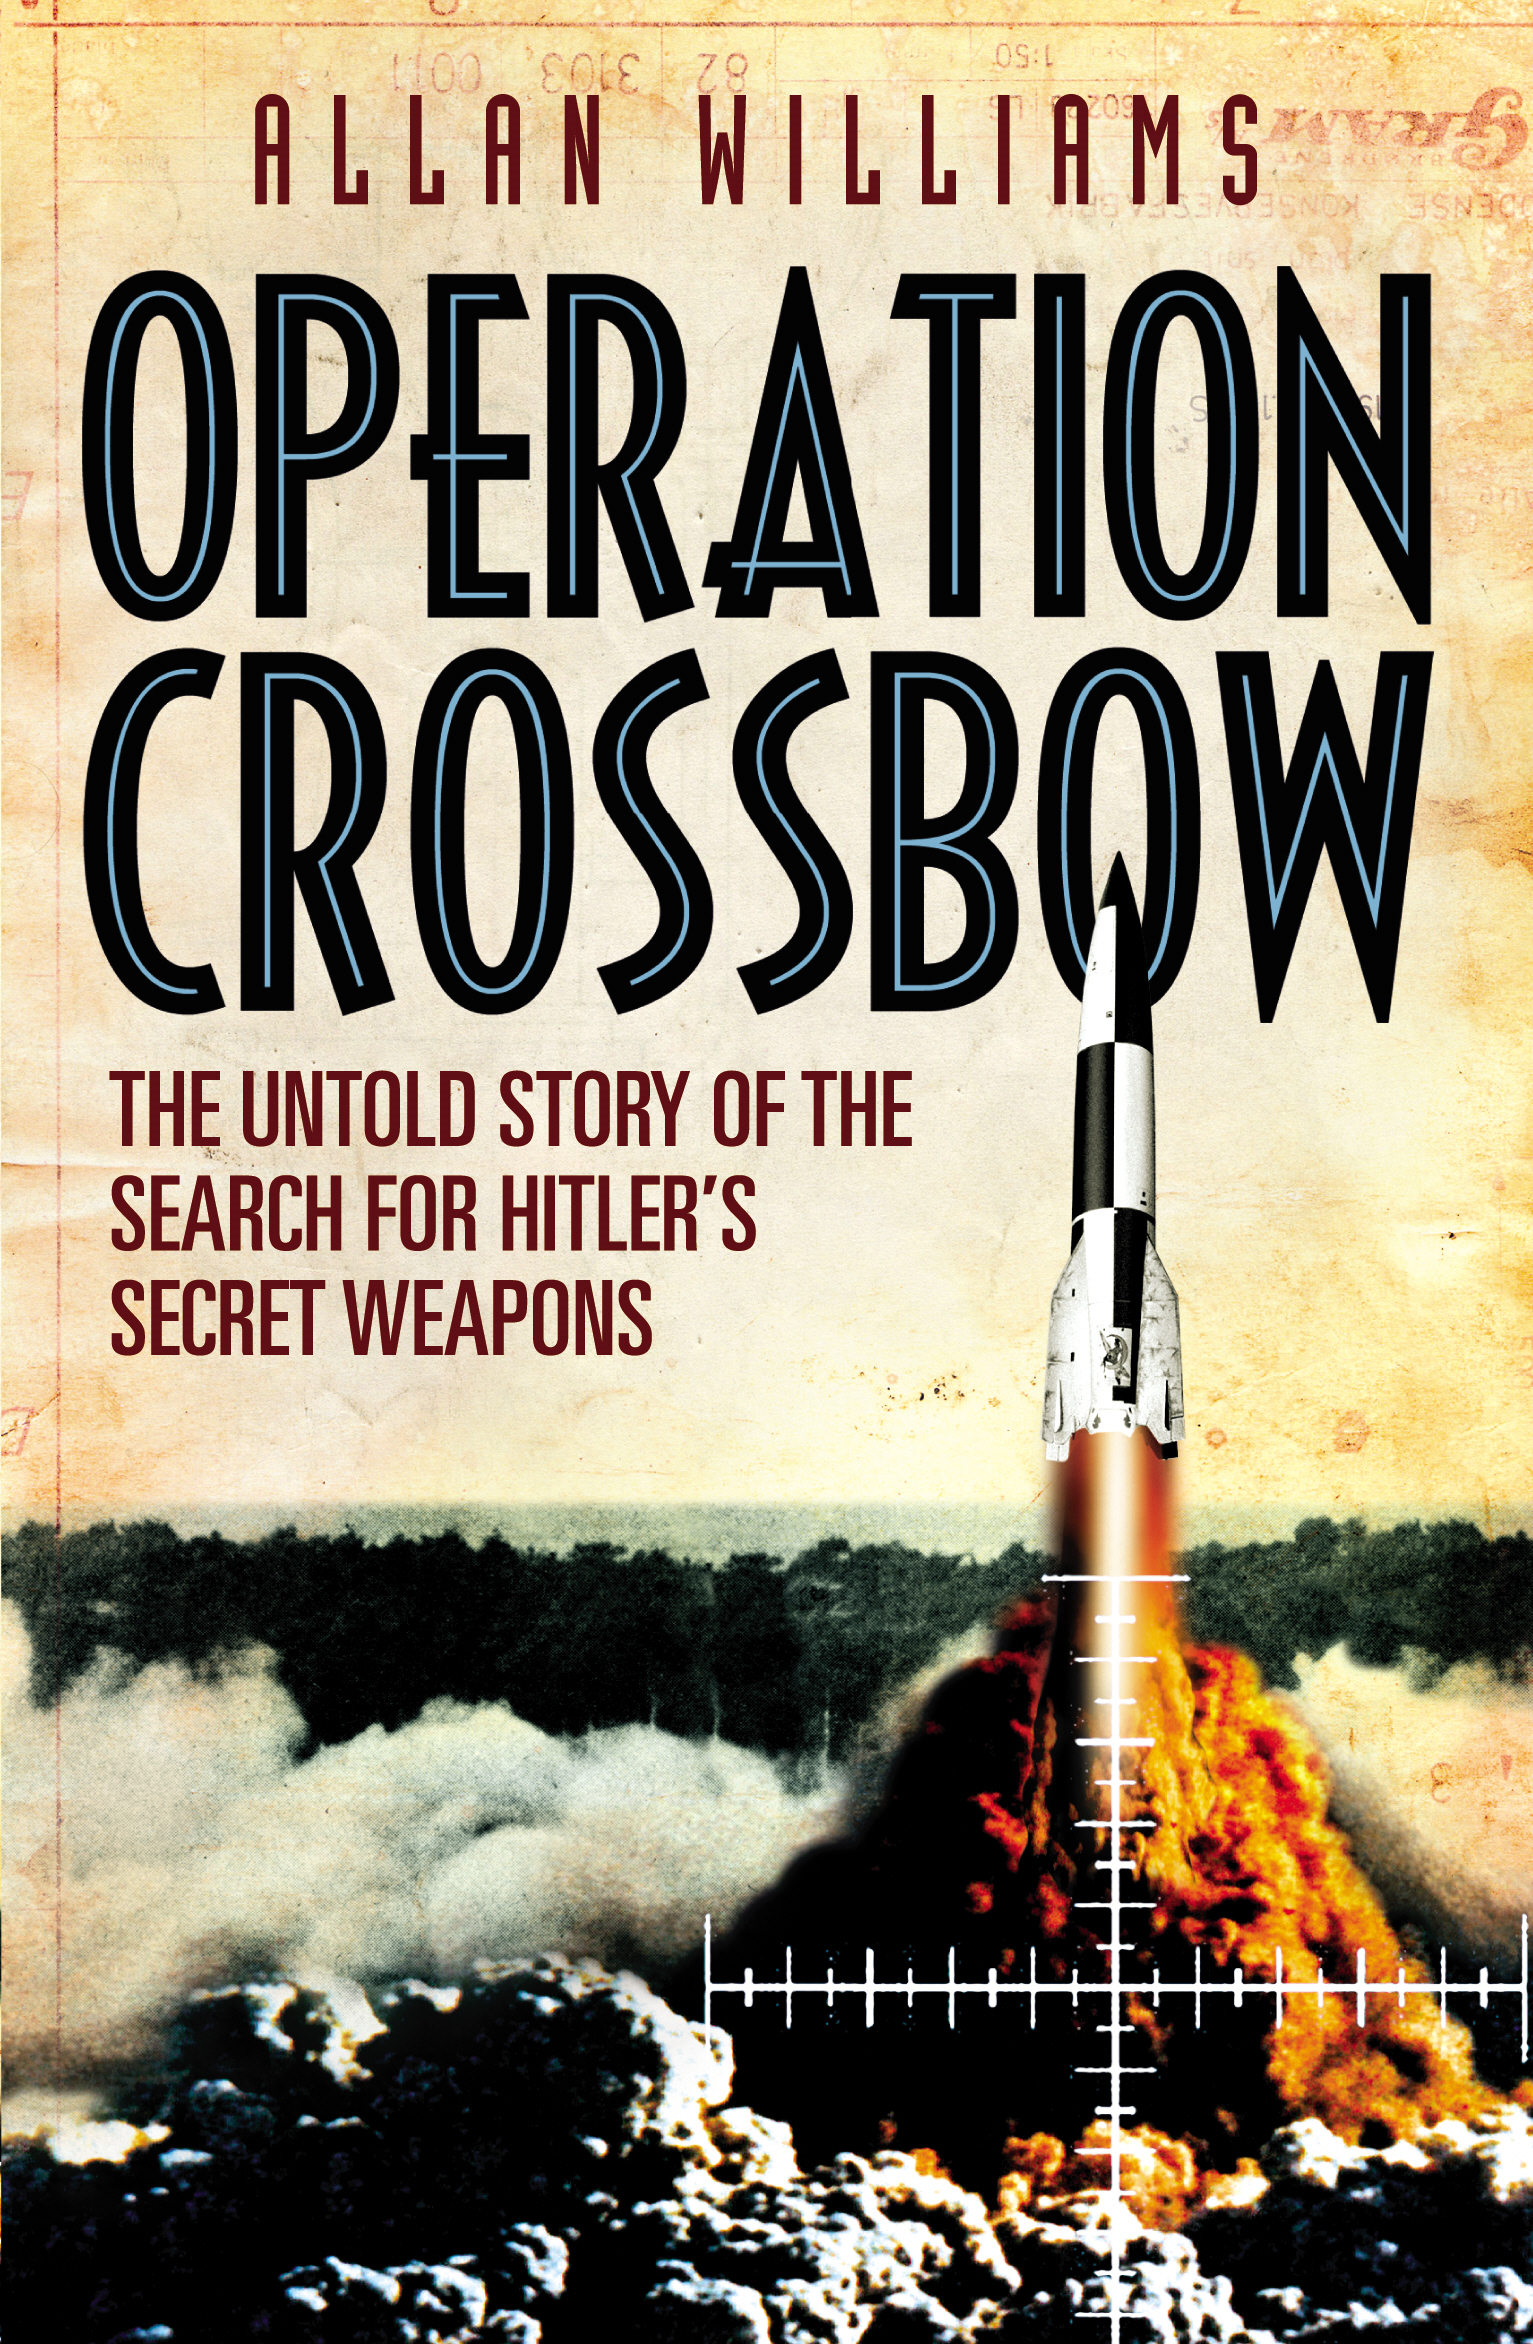 Operation Crossbow The Untold Story of the Search for Hitler?s Secret Weapons